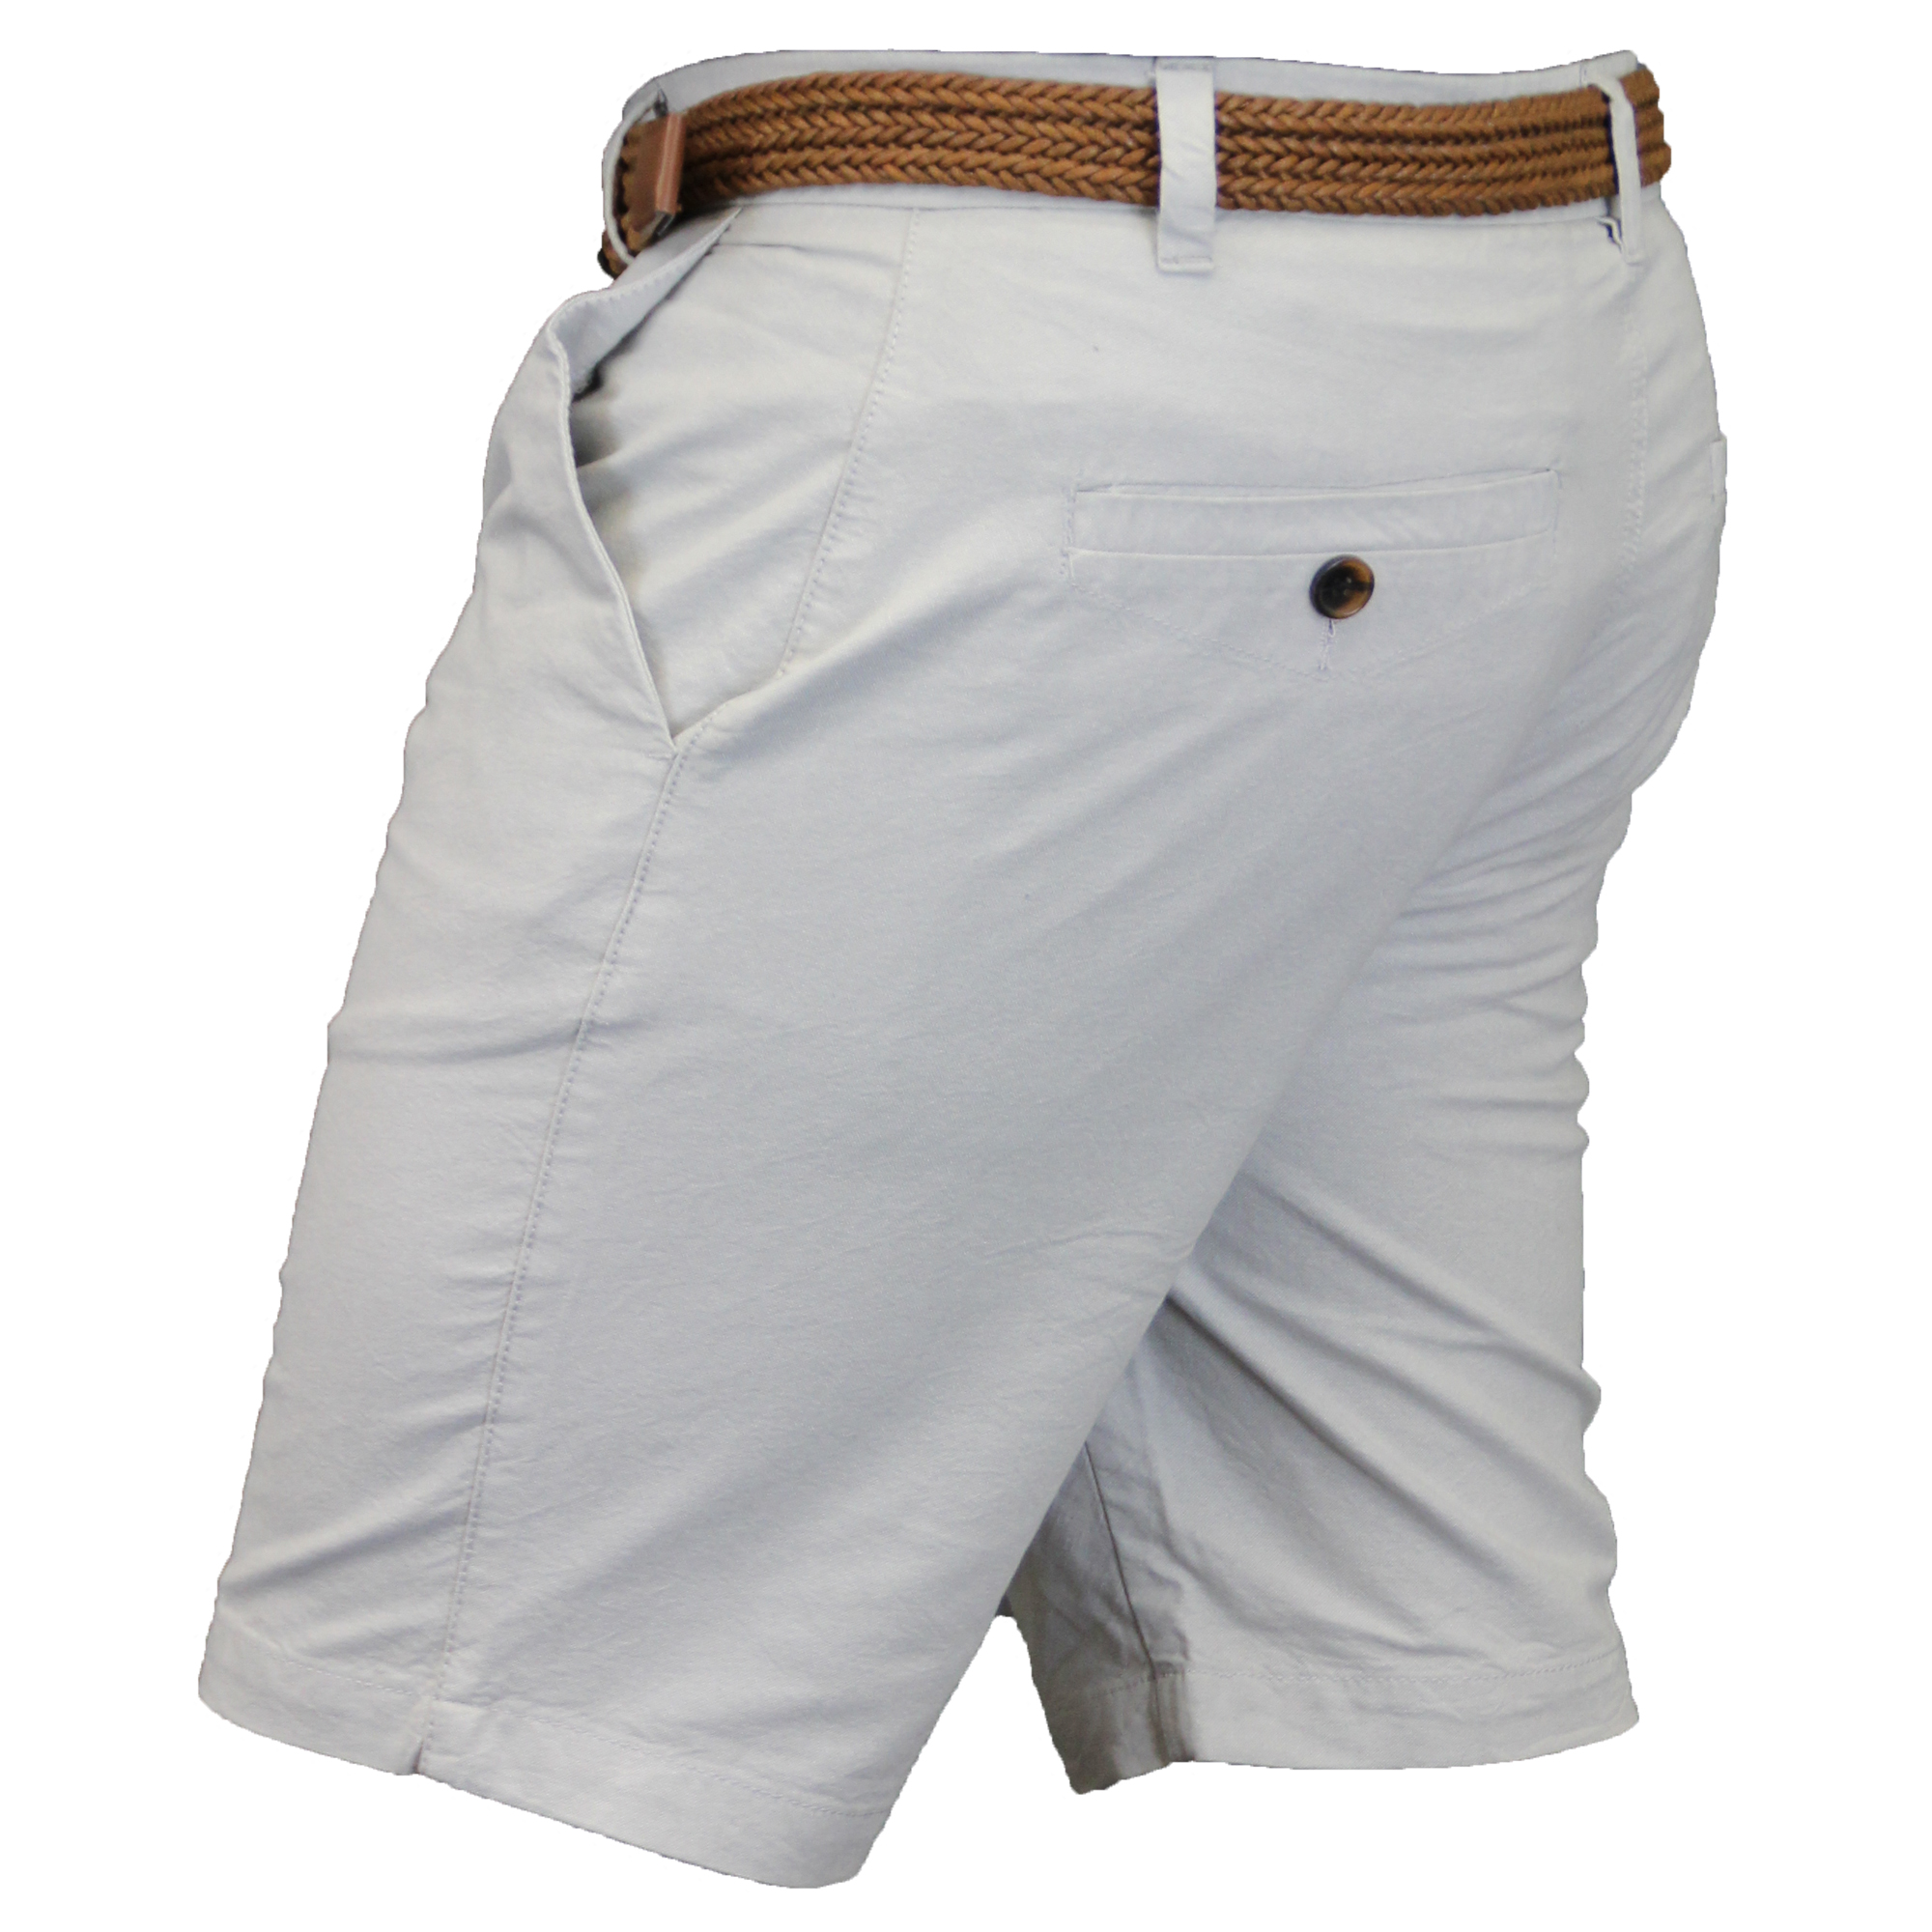 Mens-Chino-Shorts-Threadbare-Cotton-Oxford-Belted-Loyalty-amp-Faith-Seven-Series thumbnail 18